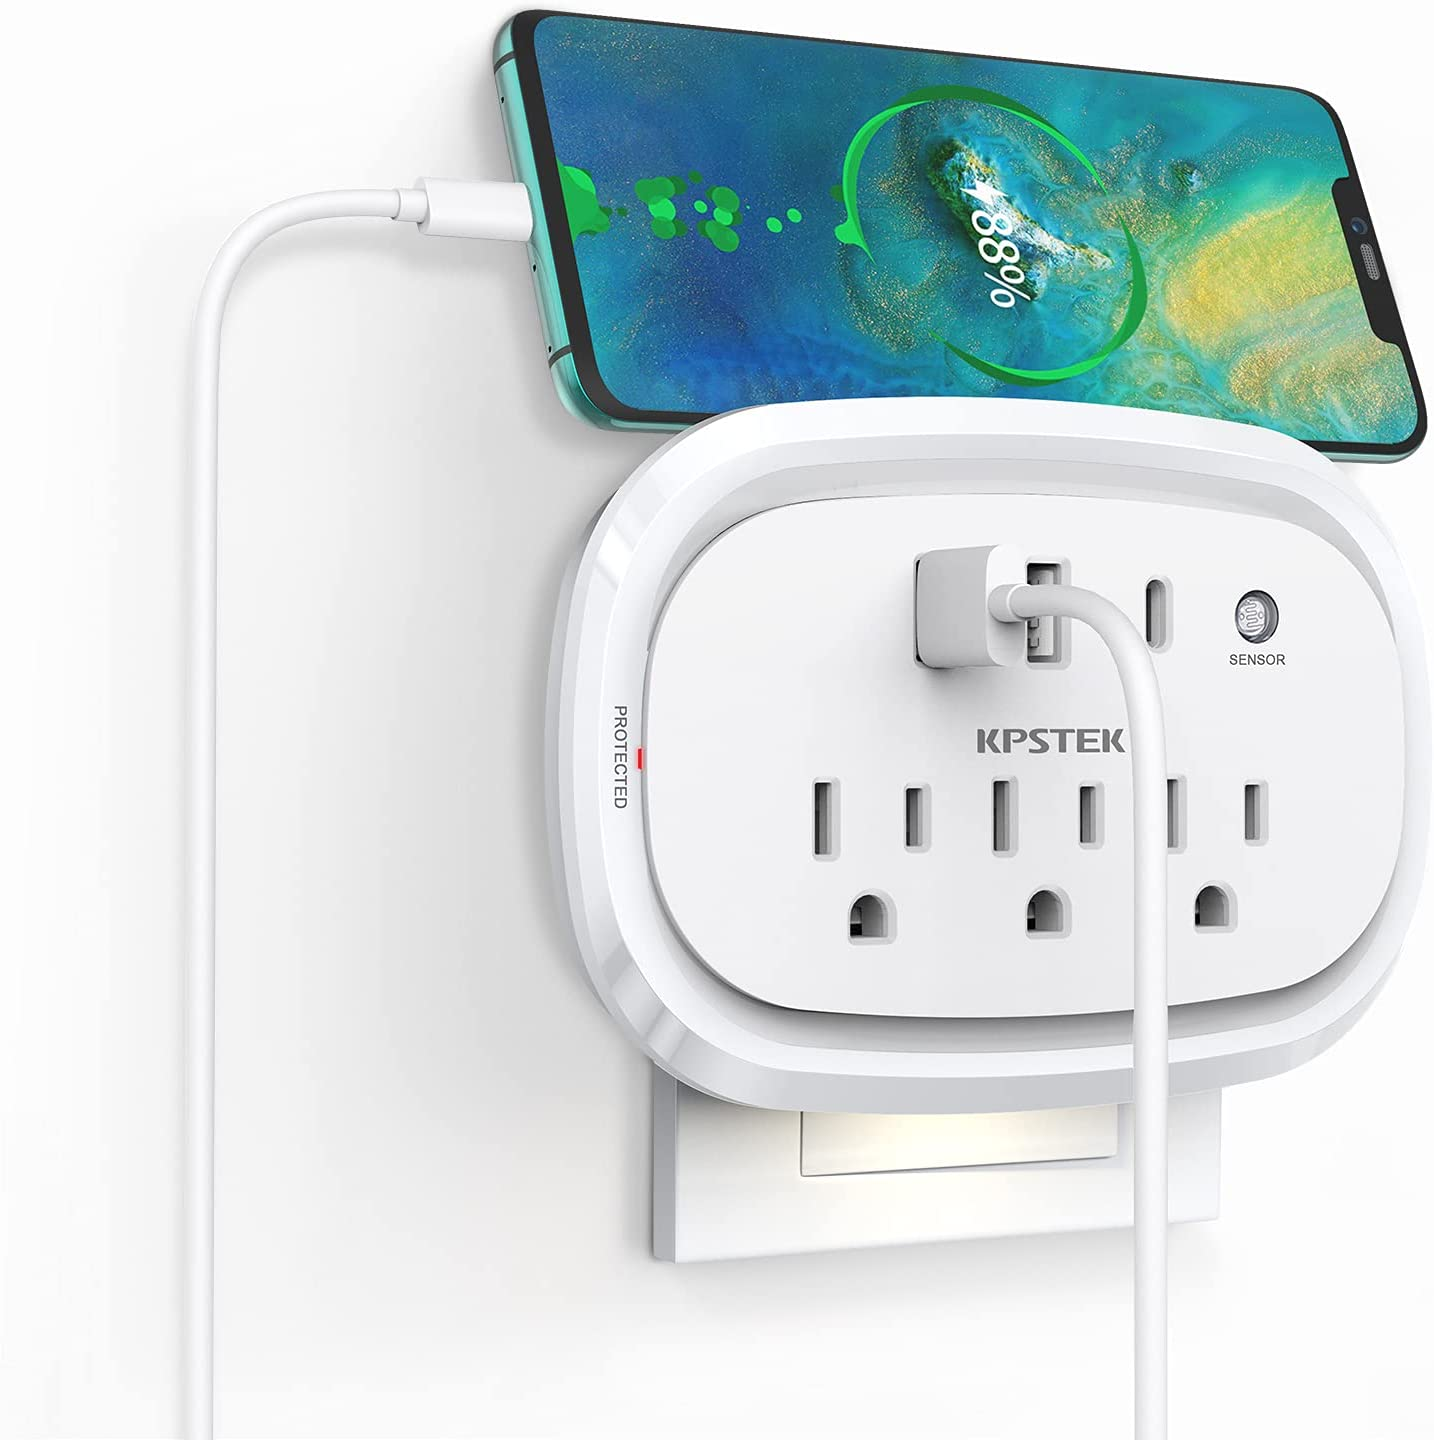 Outlet Extender, KPSTEK Multi Plug Outlet Splitter with USB C Ports and Night Light, USB Wall Charger for Home Office Accessories, Dorm Room Essentials